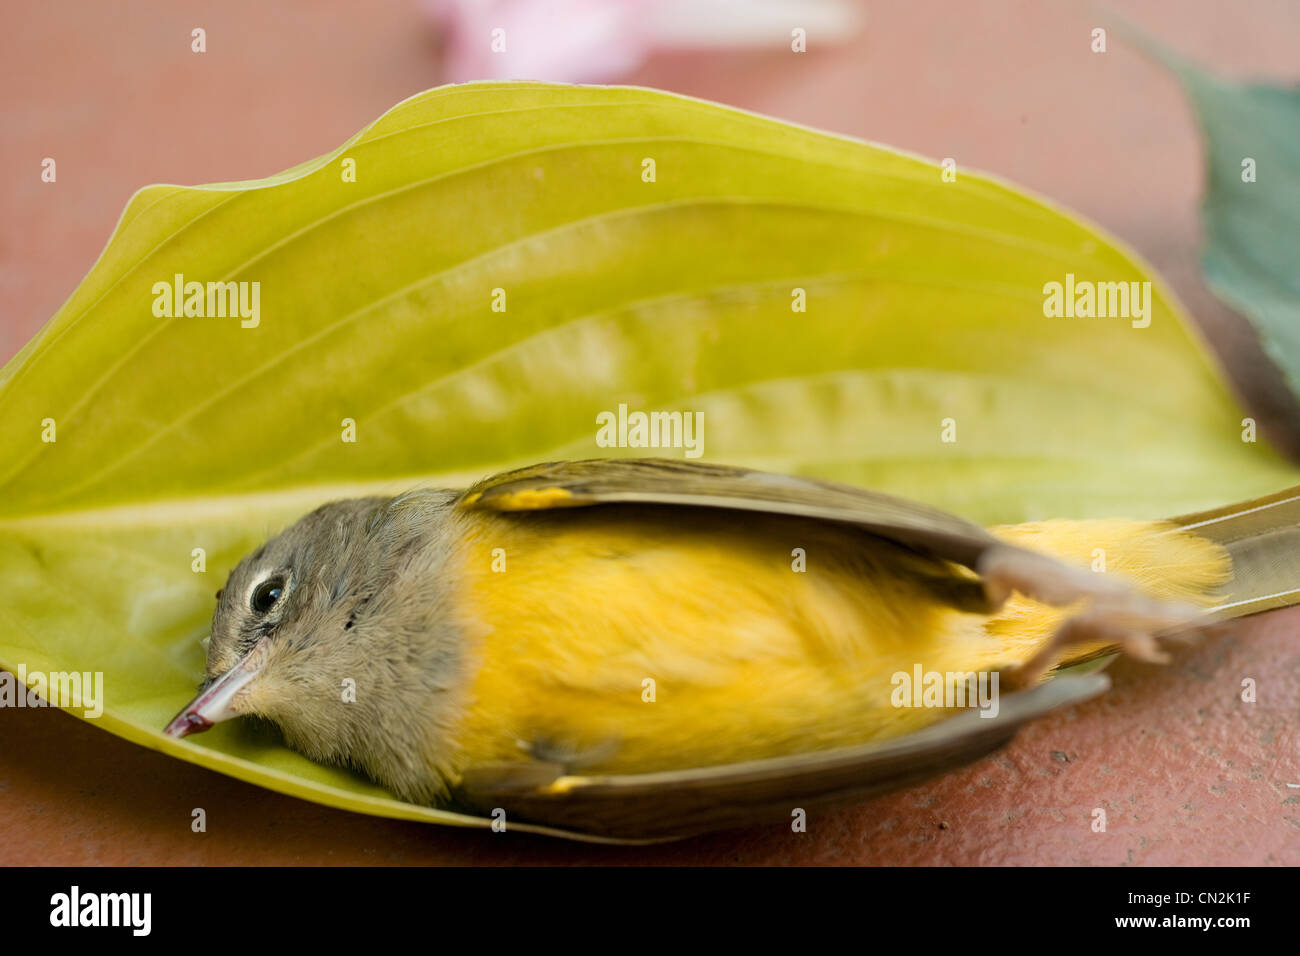 Dead bird in leaf - Stock Image